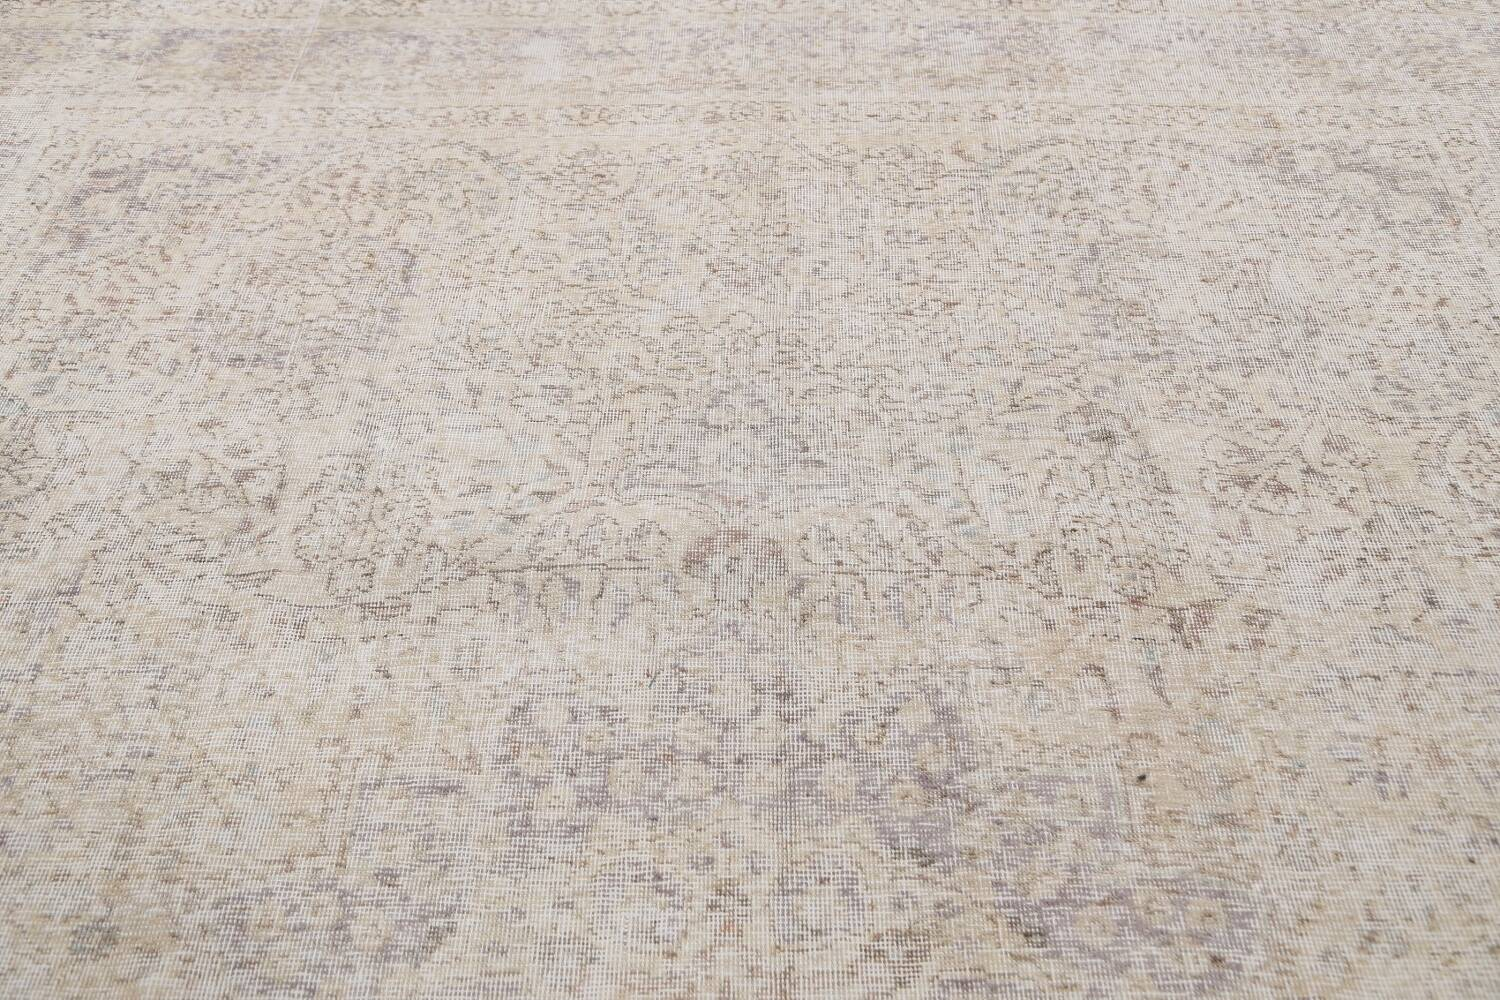 Muted Distressed Tabriz Persian Area Rug 8x11 image 12